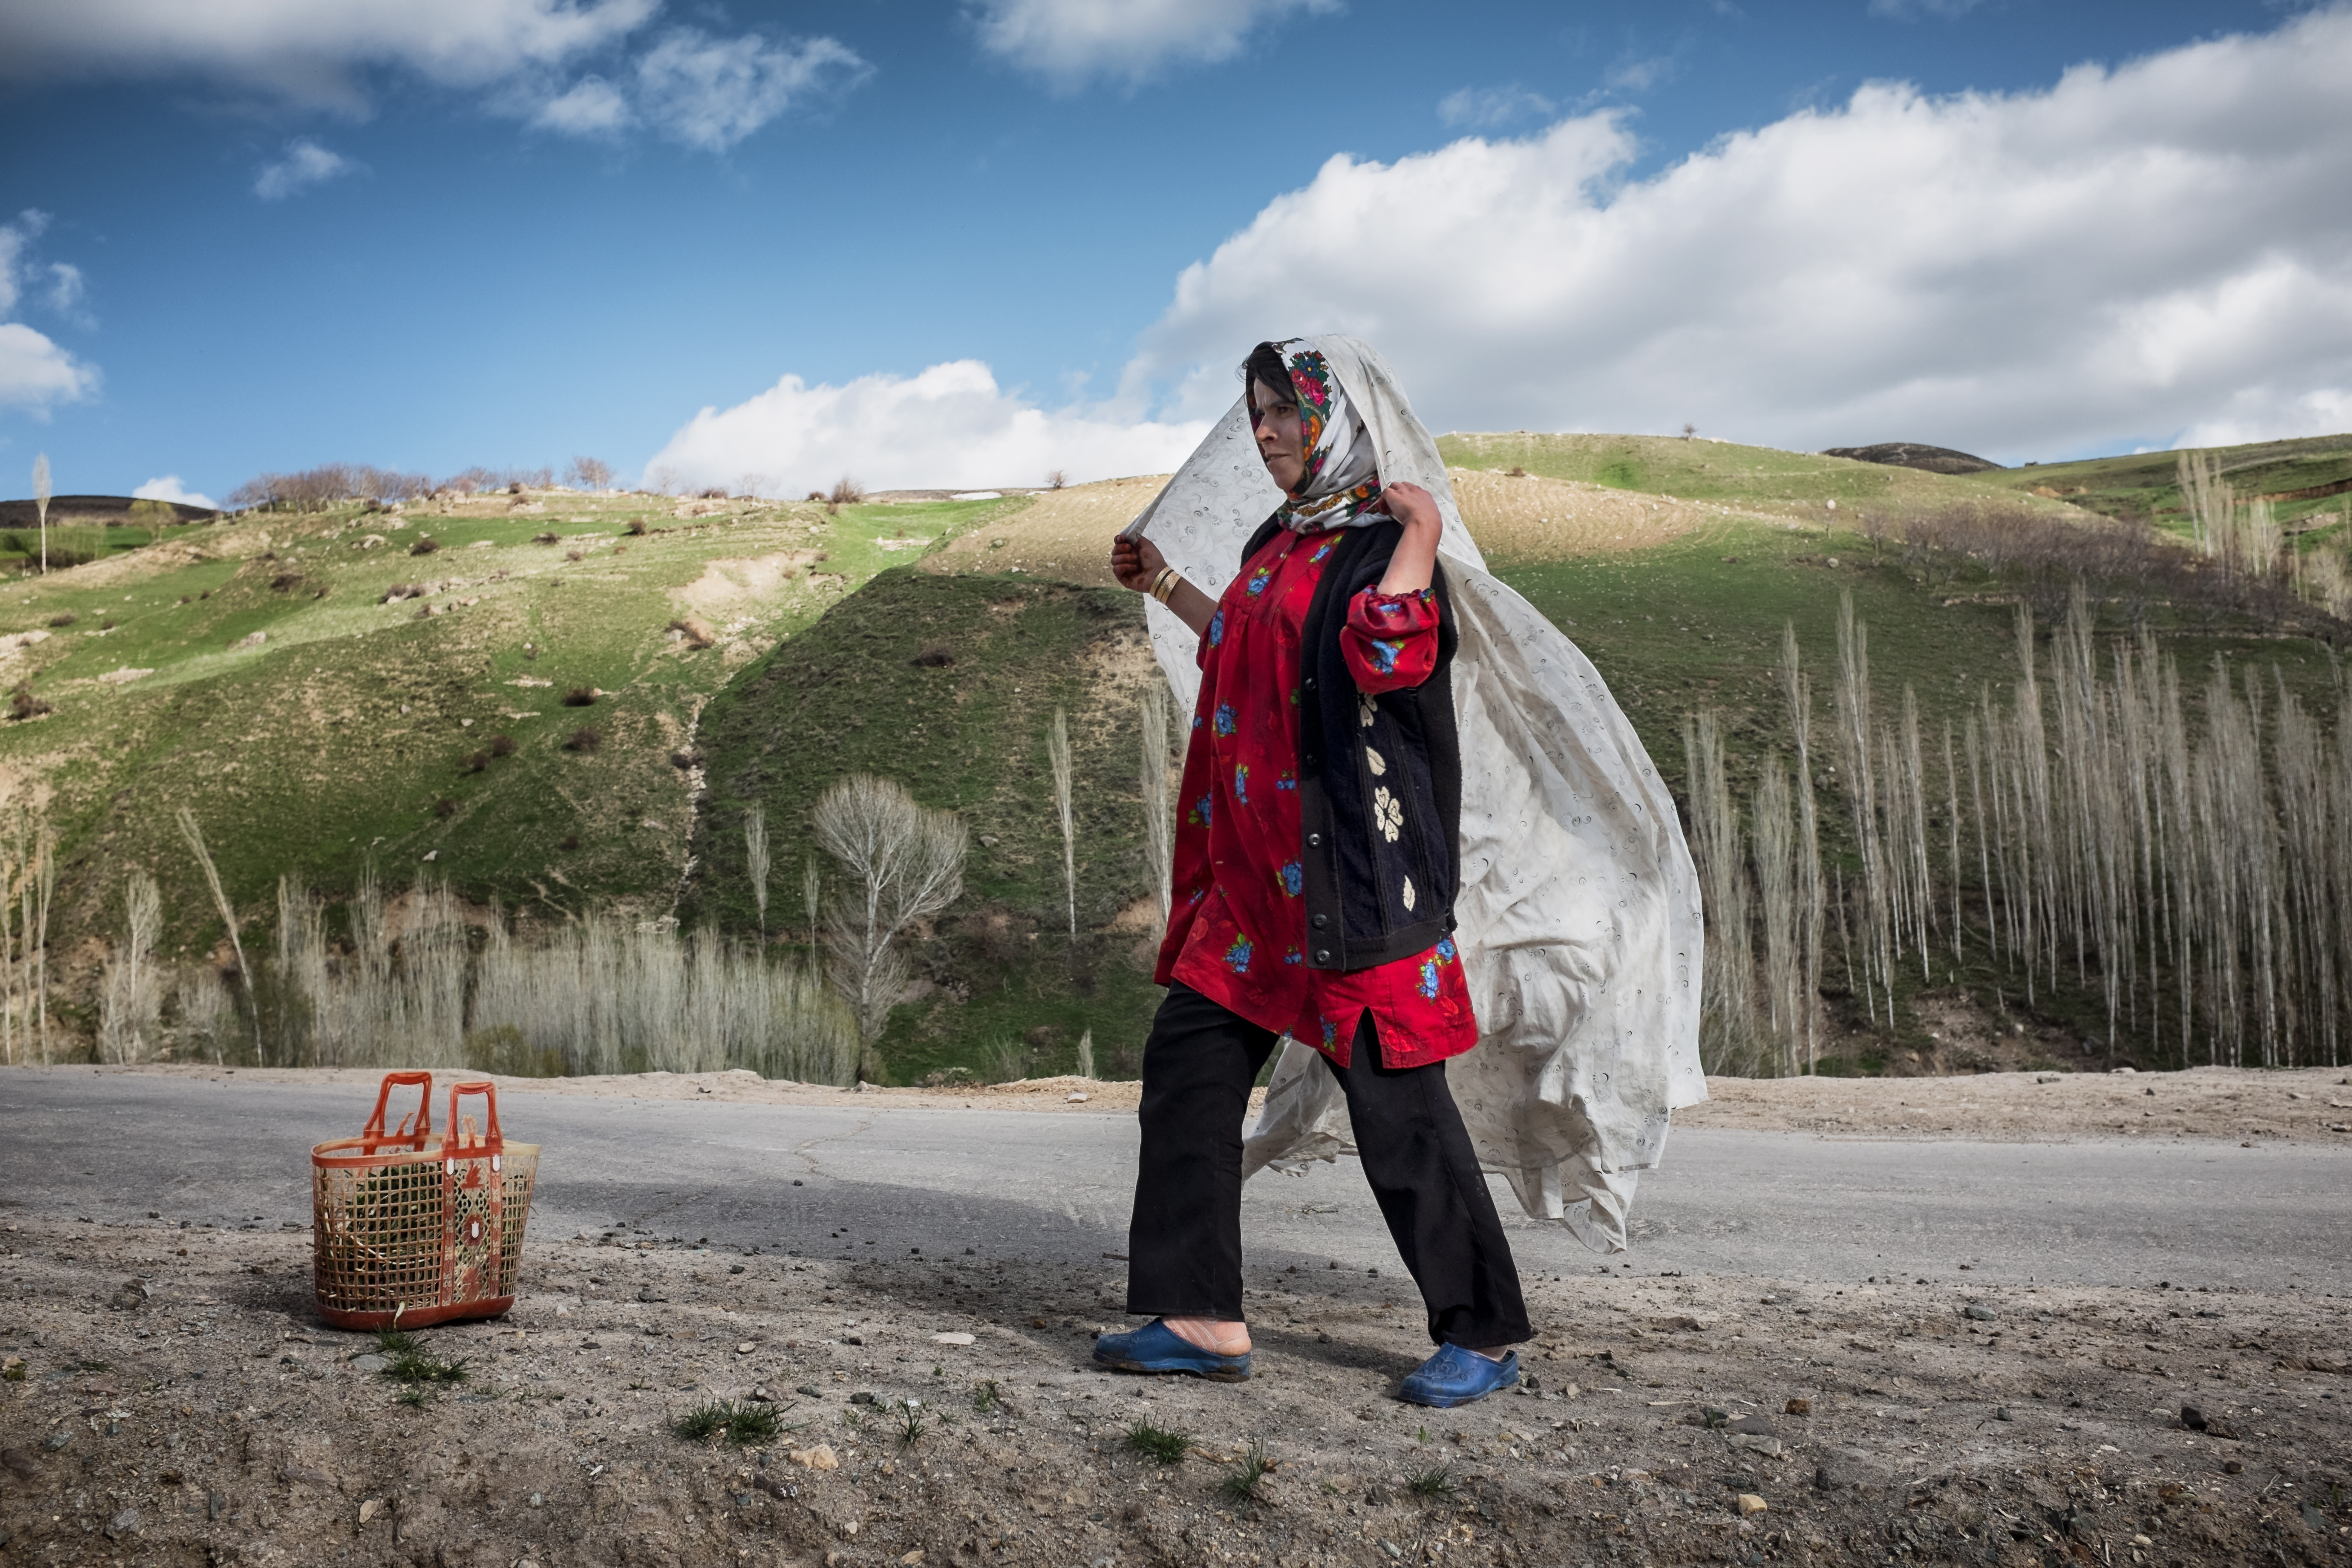 Roghayyeh is seen adjusting her chador after collecting herbs in the fields on the outskirts of Ajabshir, East Azerbaijan, Iran.